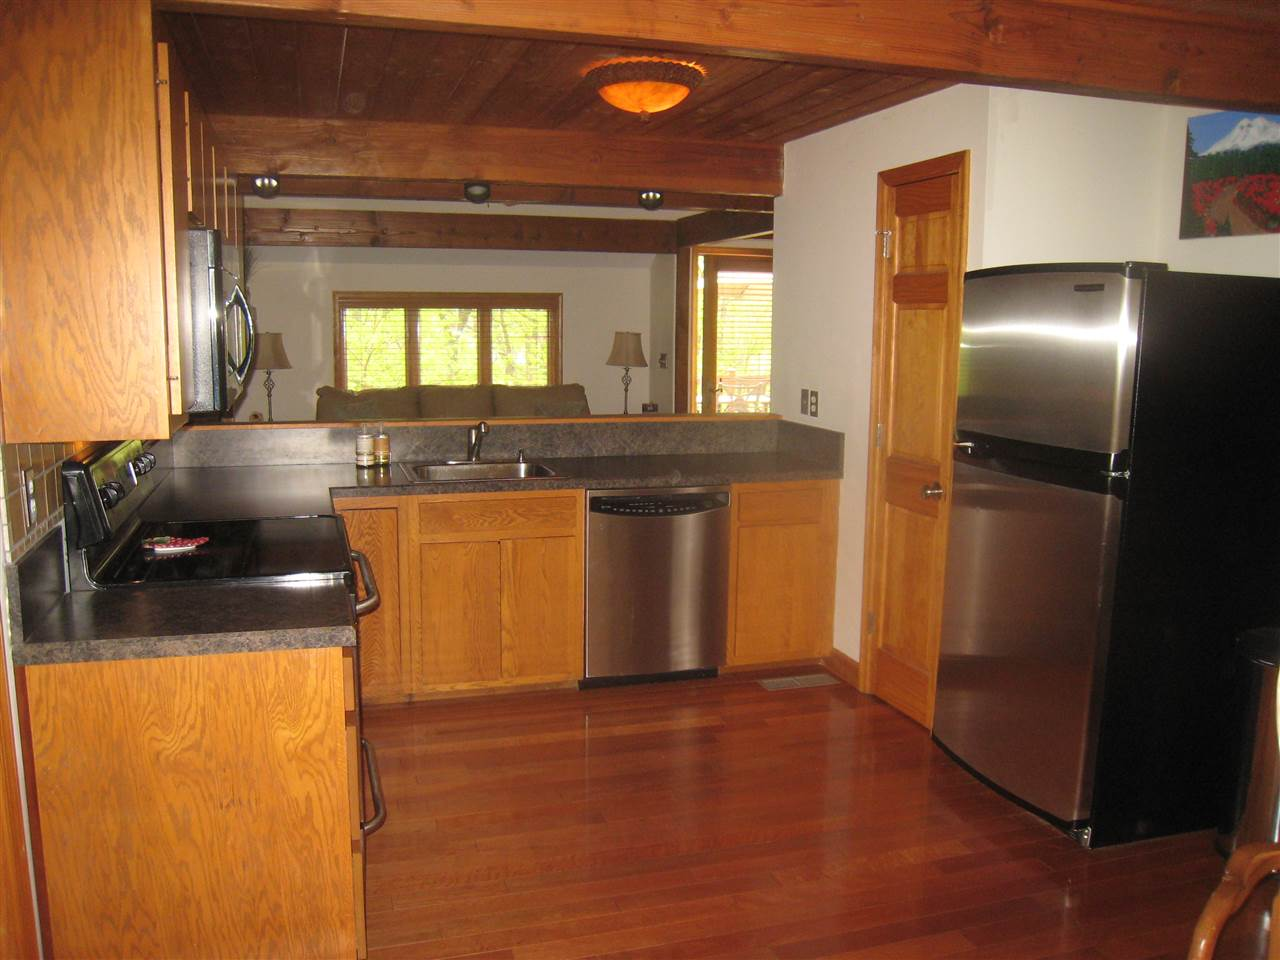 Post & Beam,Craftsman, Detached - WINTERGREEN RESORT, VA (photo 5)